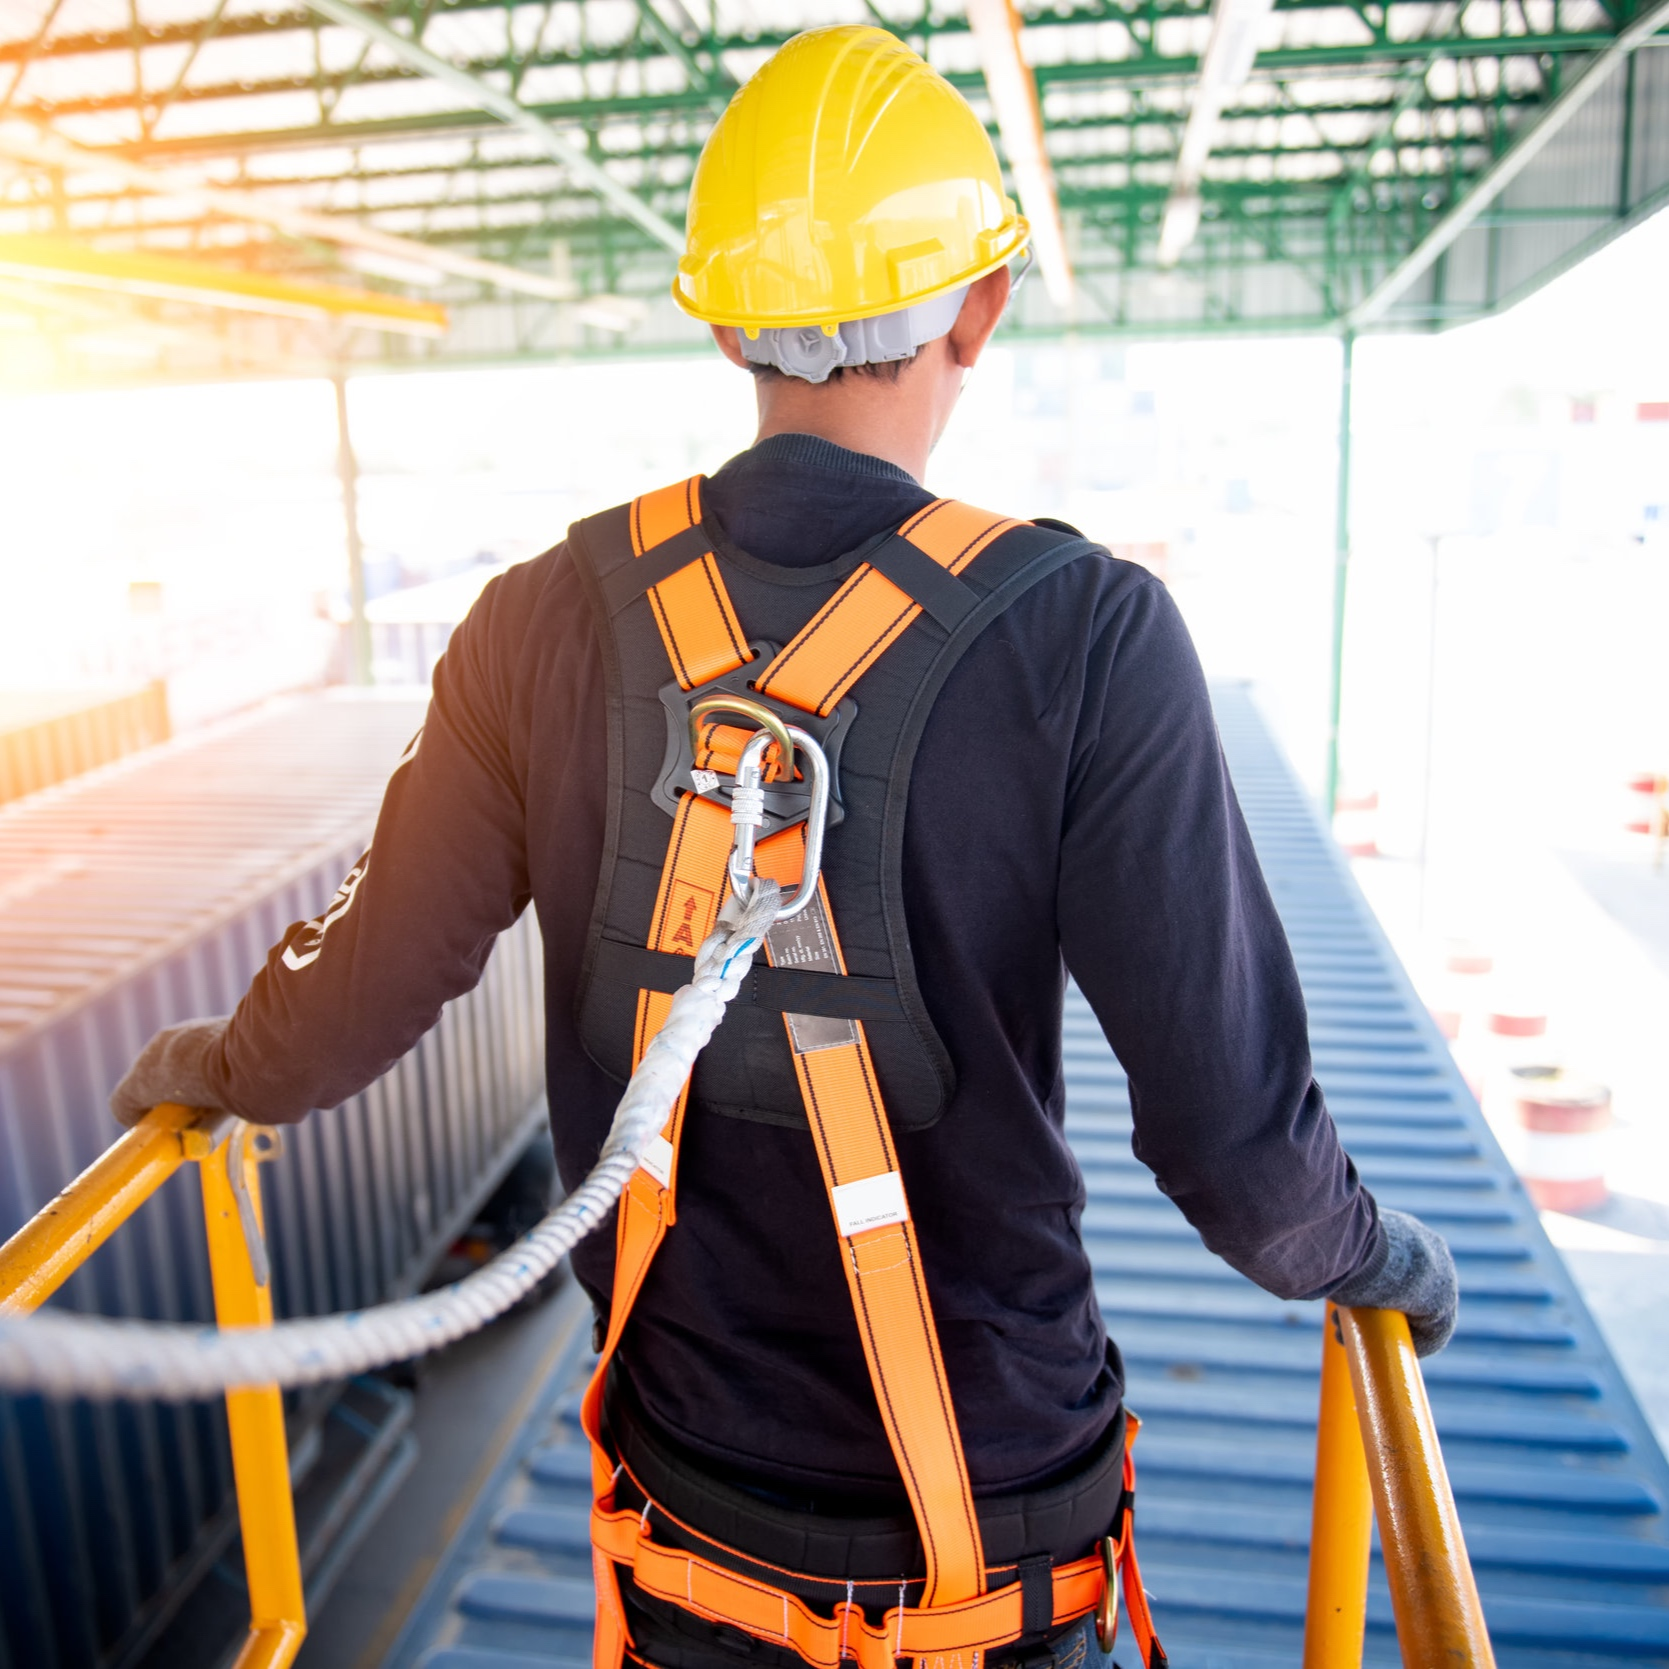 Safety - Identify hazards as they emerge to address unsafe activity in your workplace.